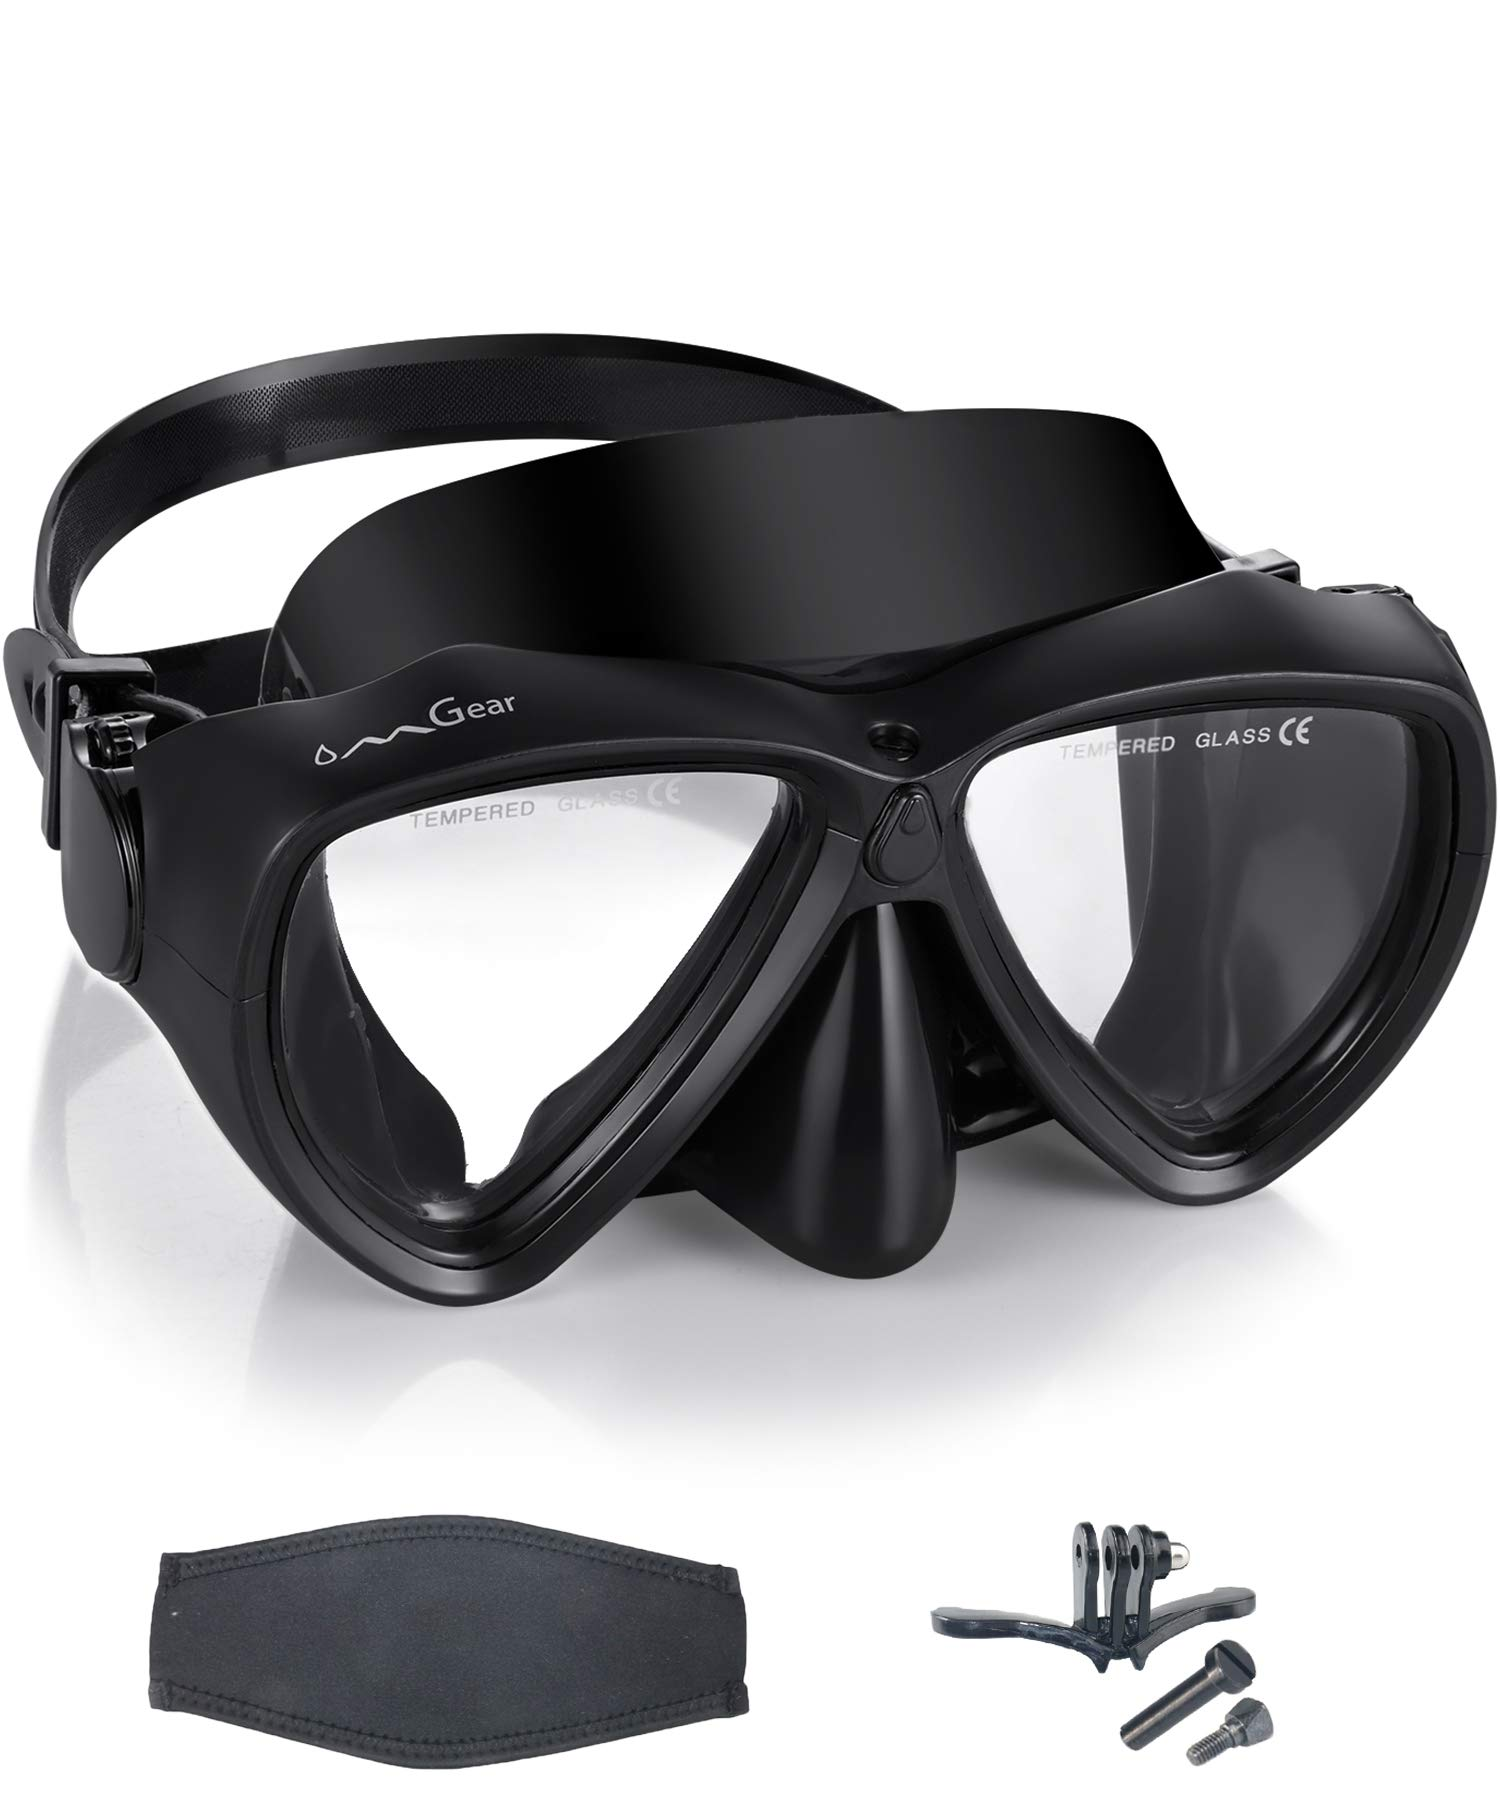 OMGear Scuba Diving Mask Low Volume Frameless Snorkeling Mask Anti-Fog Leak-Free Premium Silicone Dive Goggles with Neoprene Mask Strap for Freediving Spearfishing Swimming (Black with Camera Mount) by OMGear